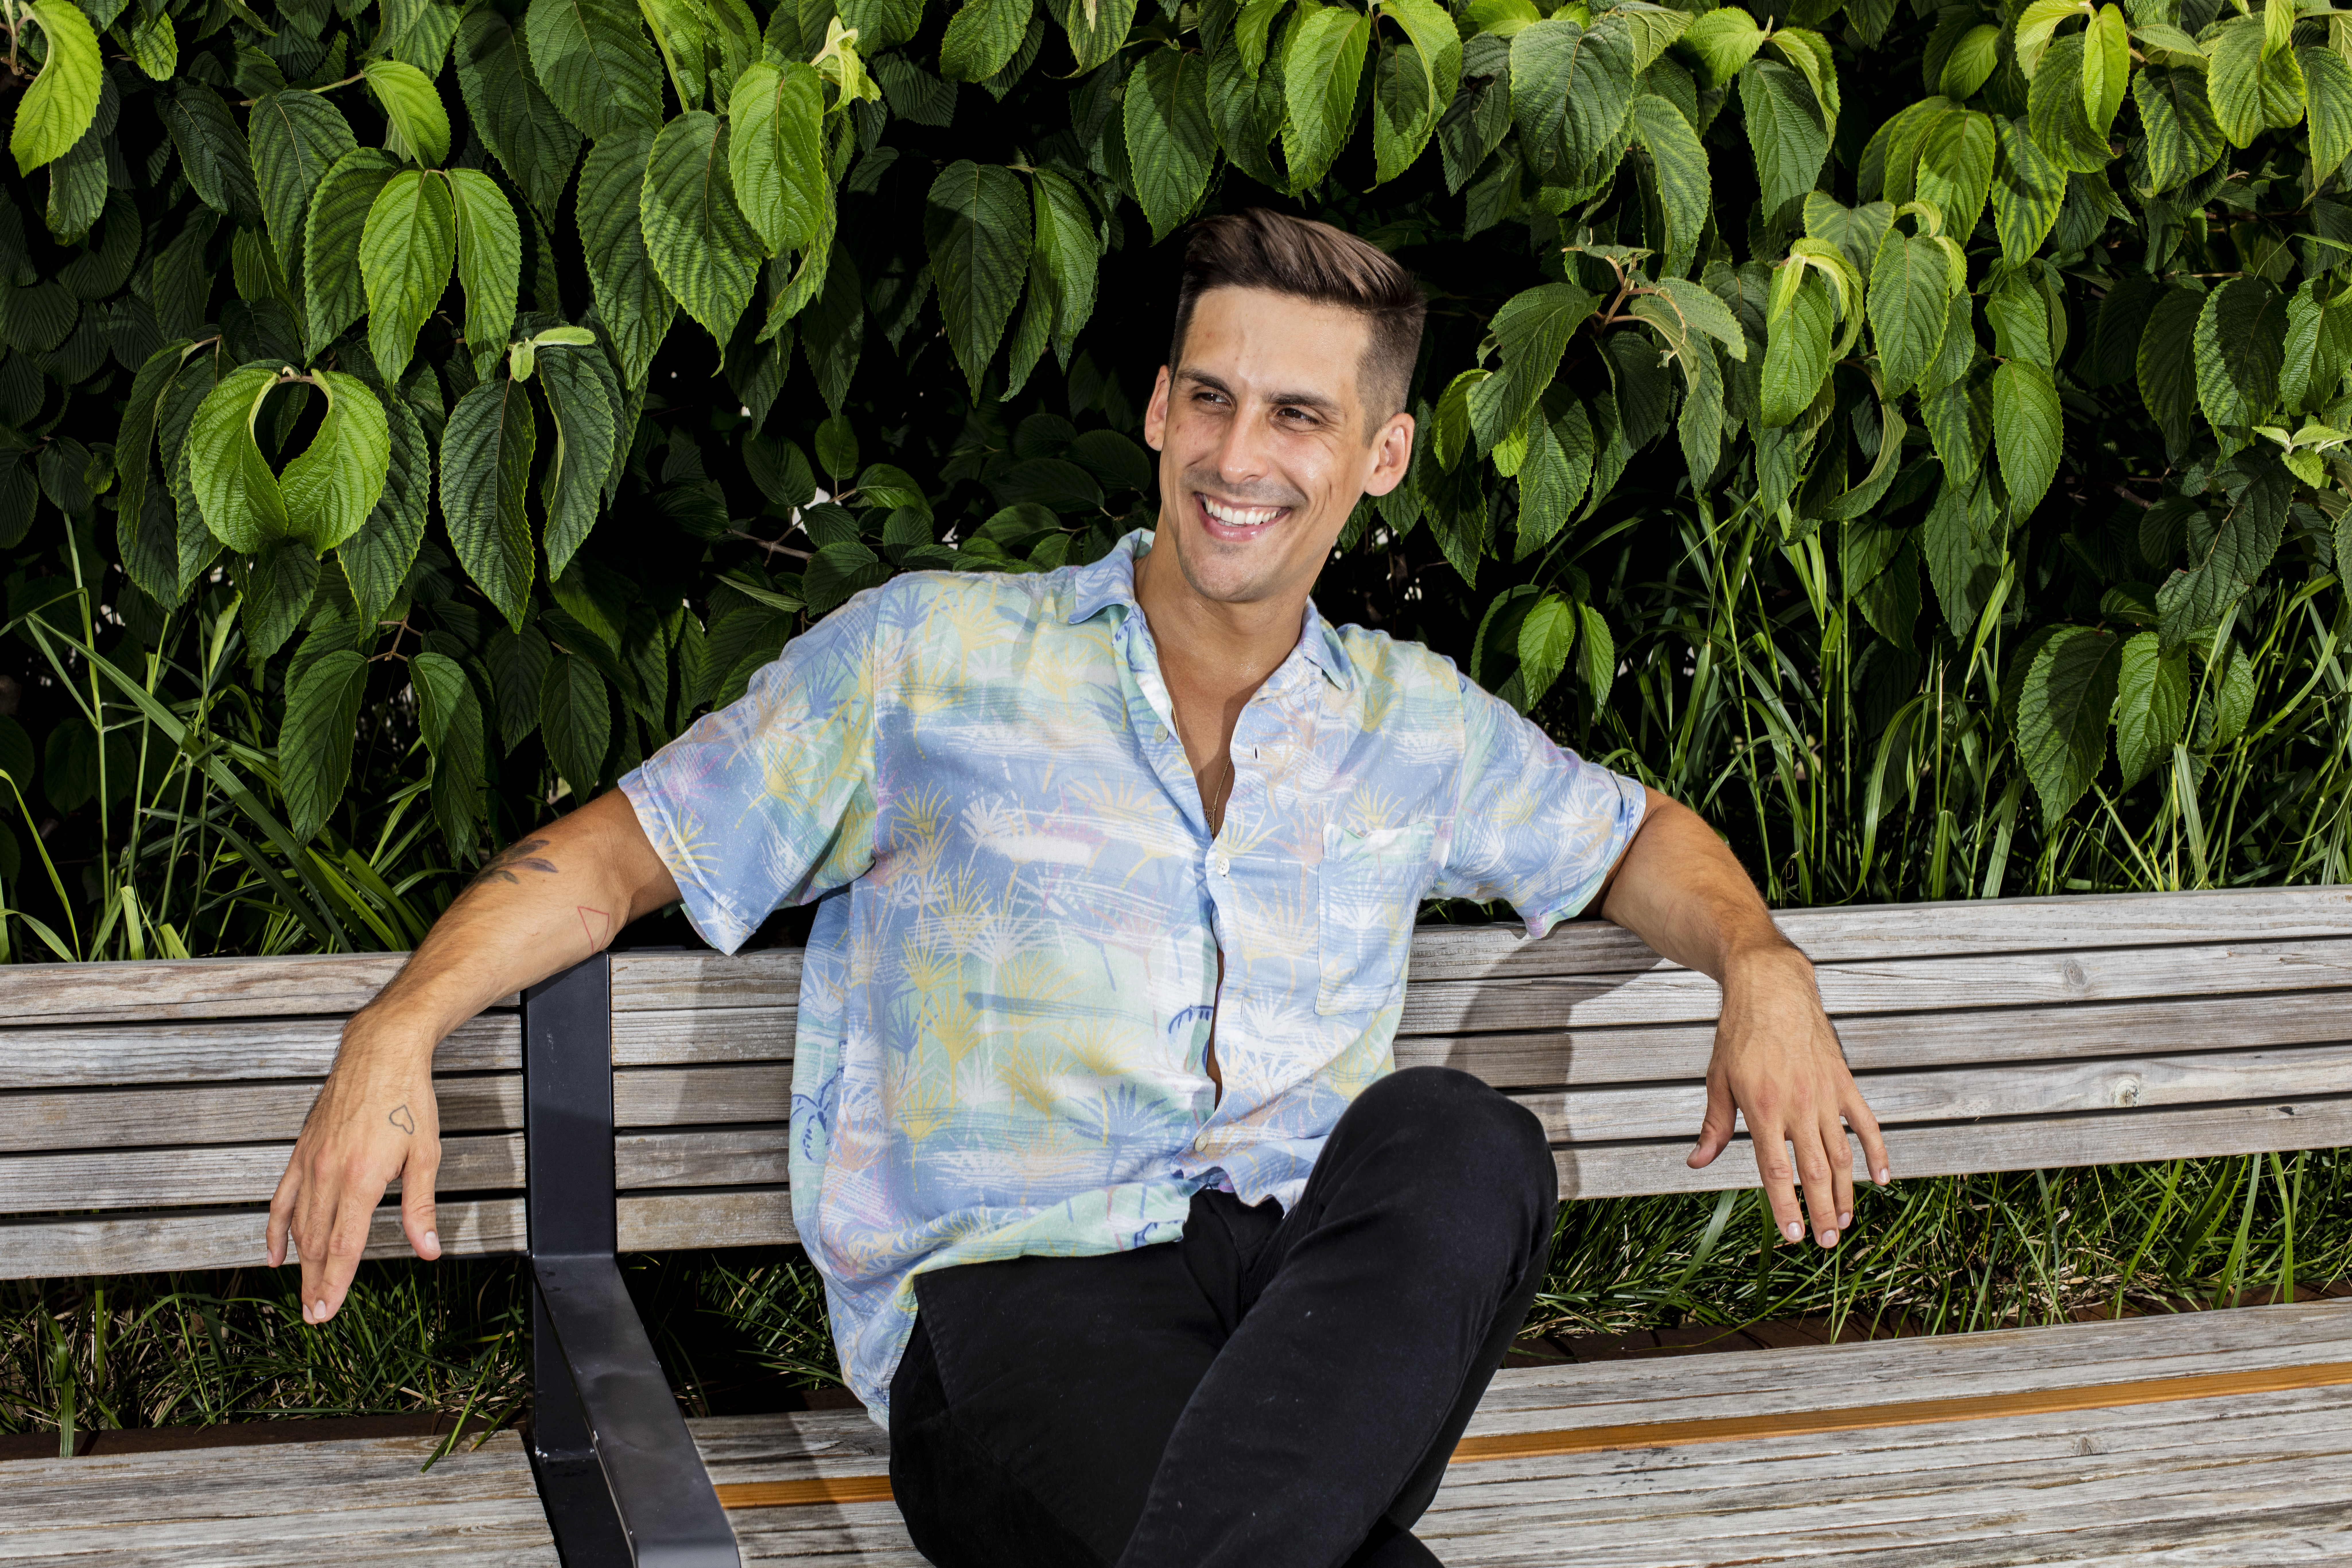 Cody Rigsby sits smiling on a park bench with shrubbery behind him.